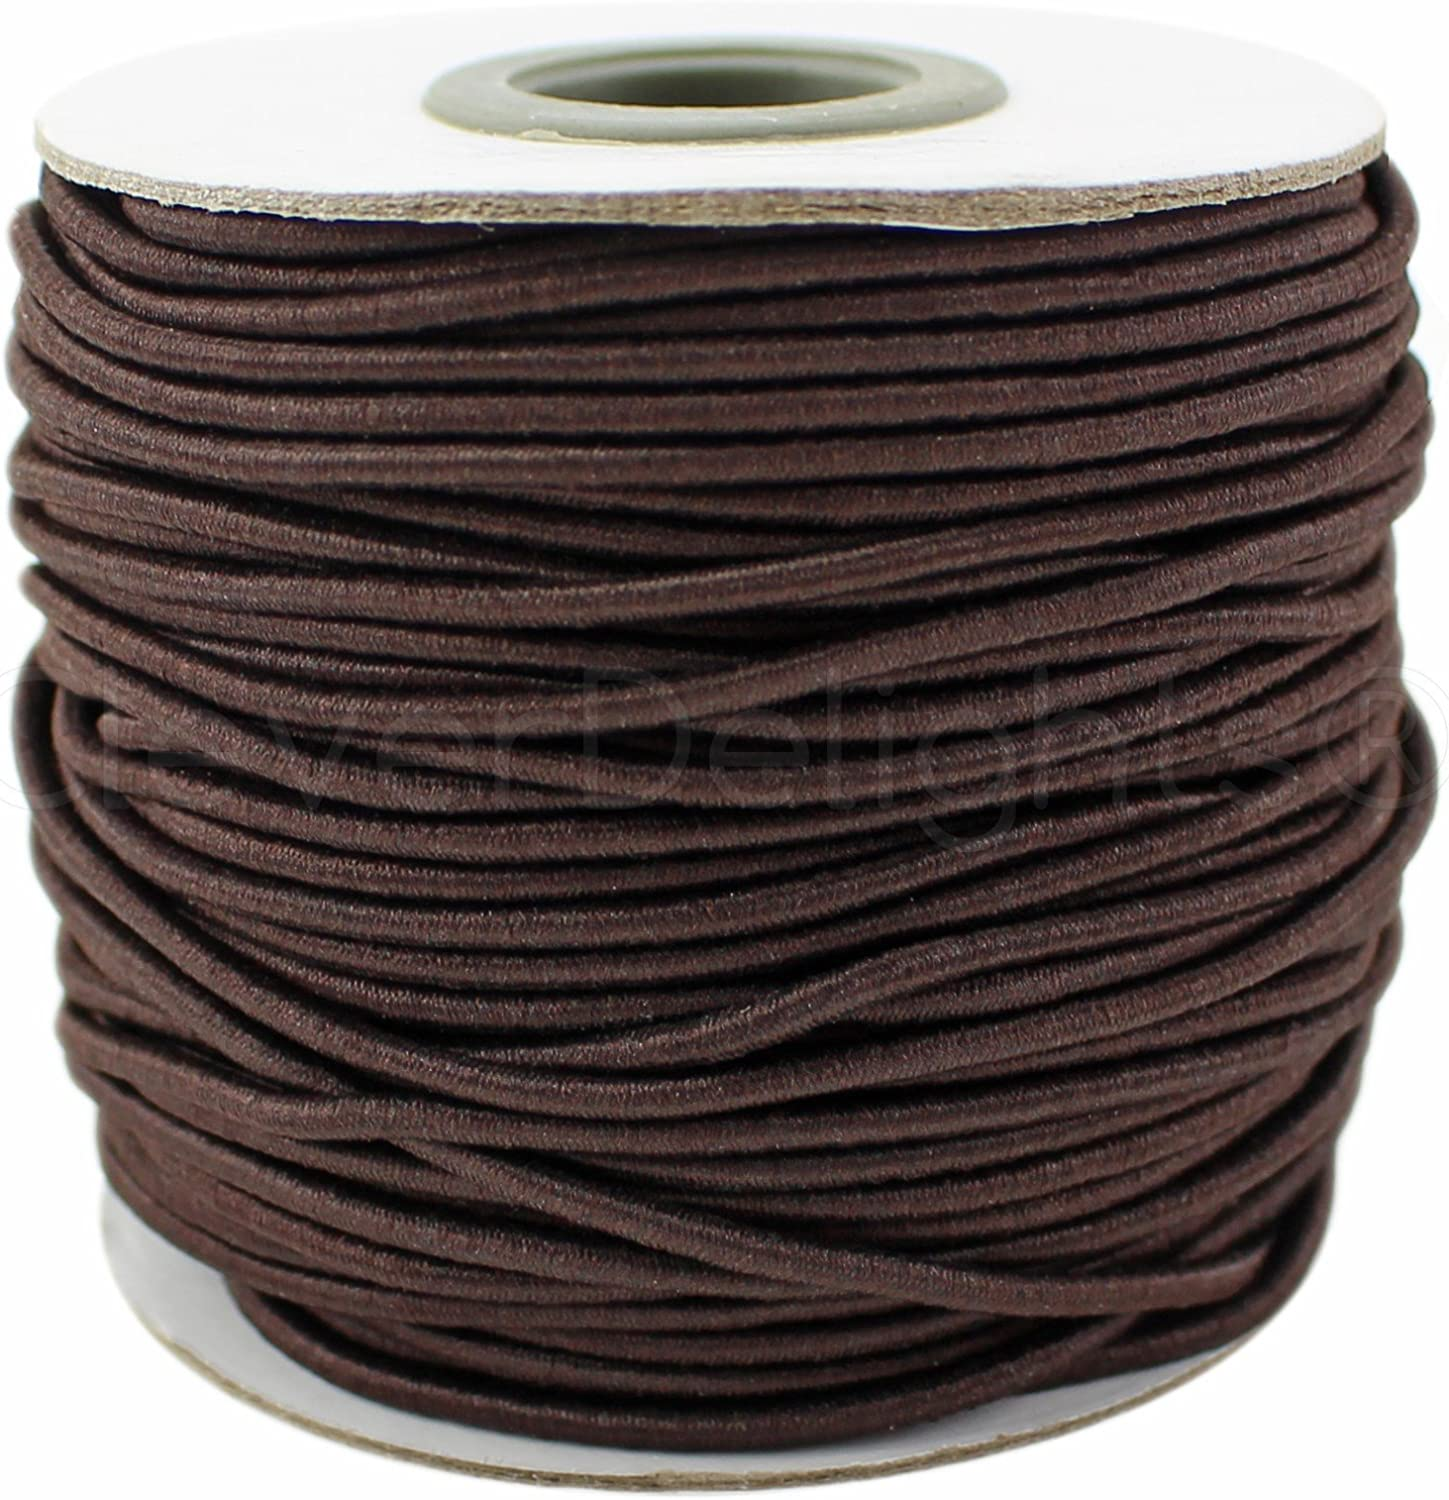 Crafts Beading Jewelry Stretch Shock Cording CleverDelights Brown Fabric Elastic Cord 2mm 10 Yards